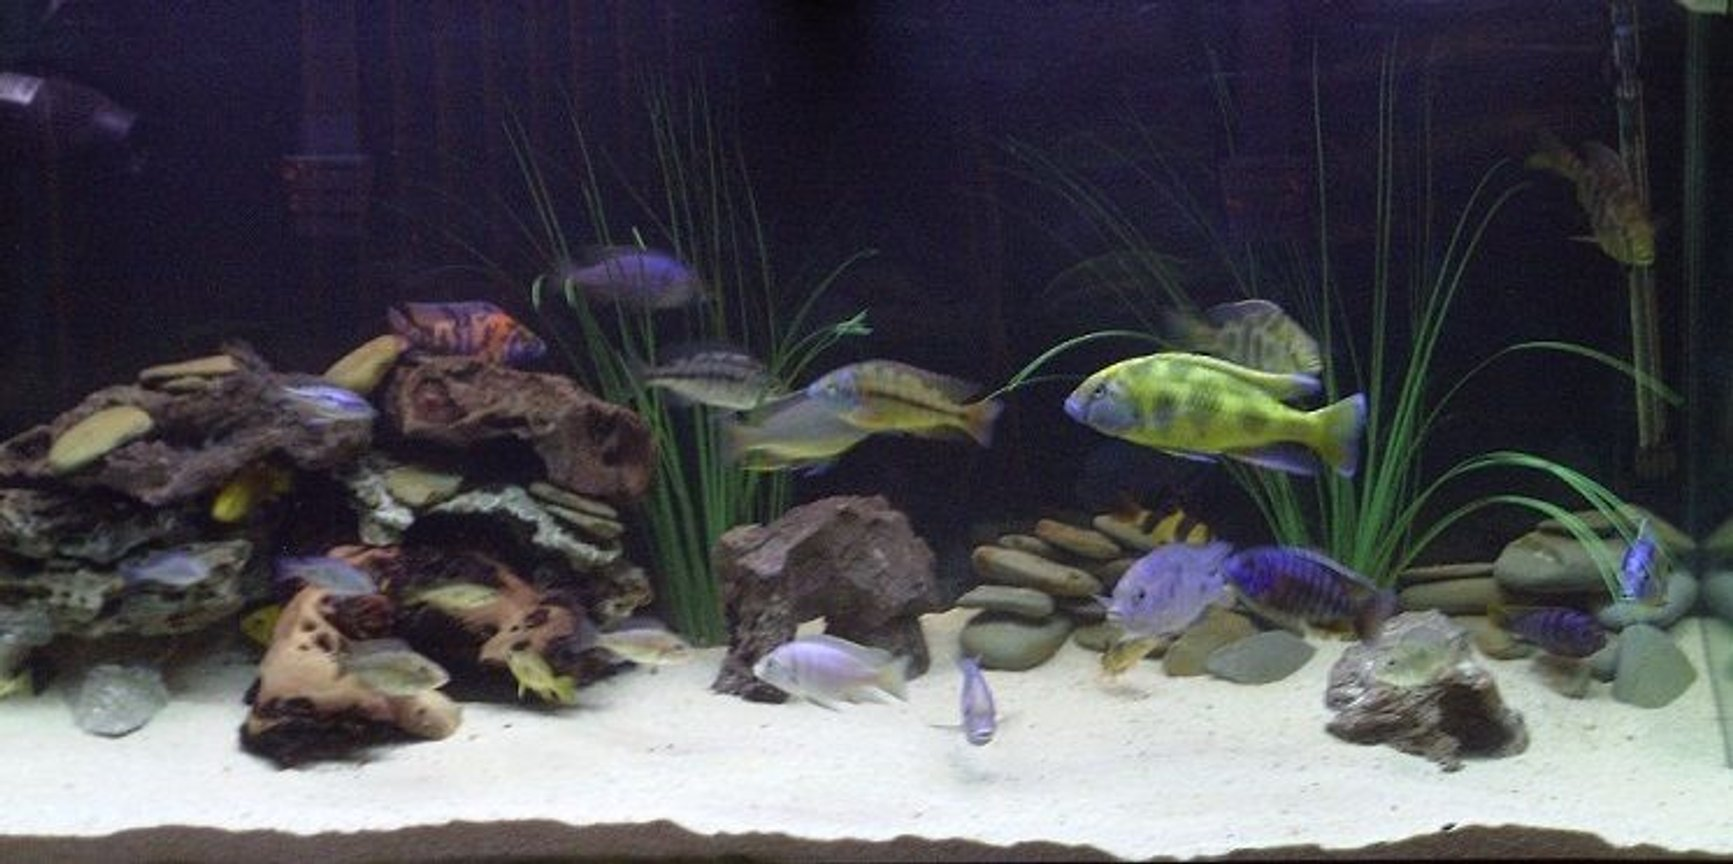 90 gallons freshwater fish tank (mostly fish and non-living decorations) - My mixed African Cichlid aquarium.